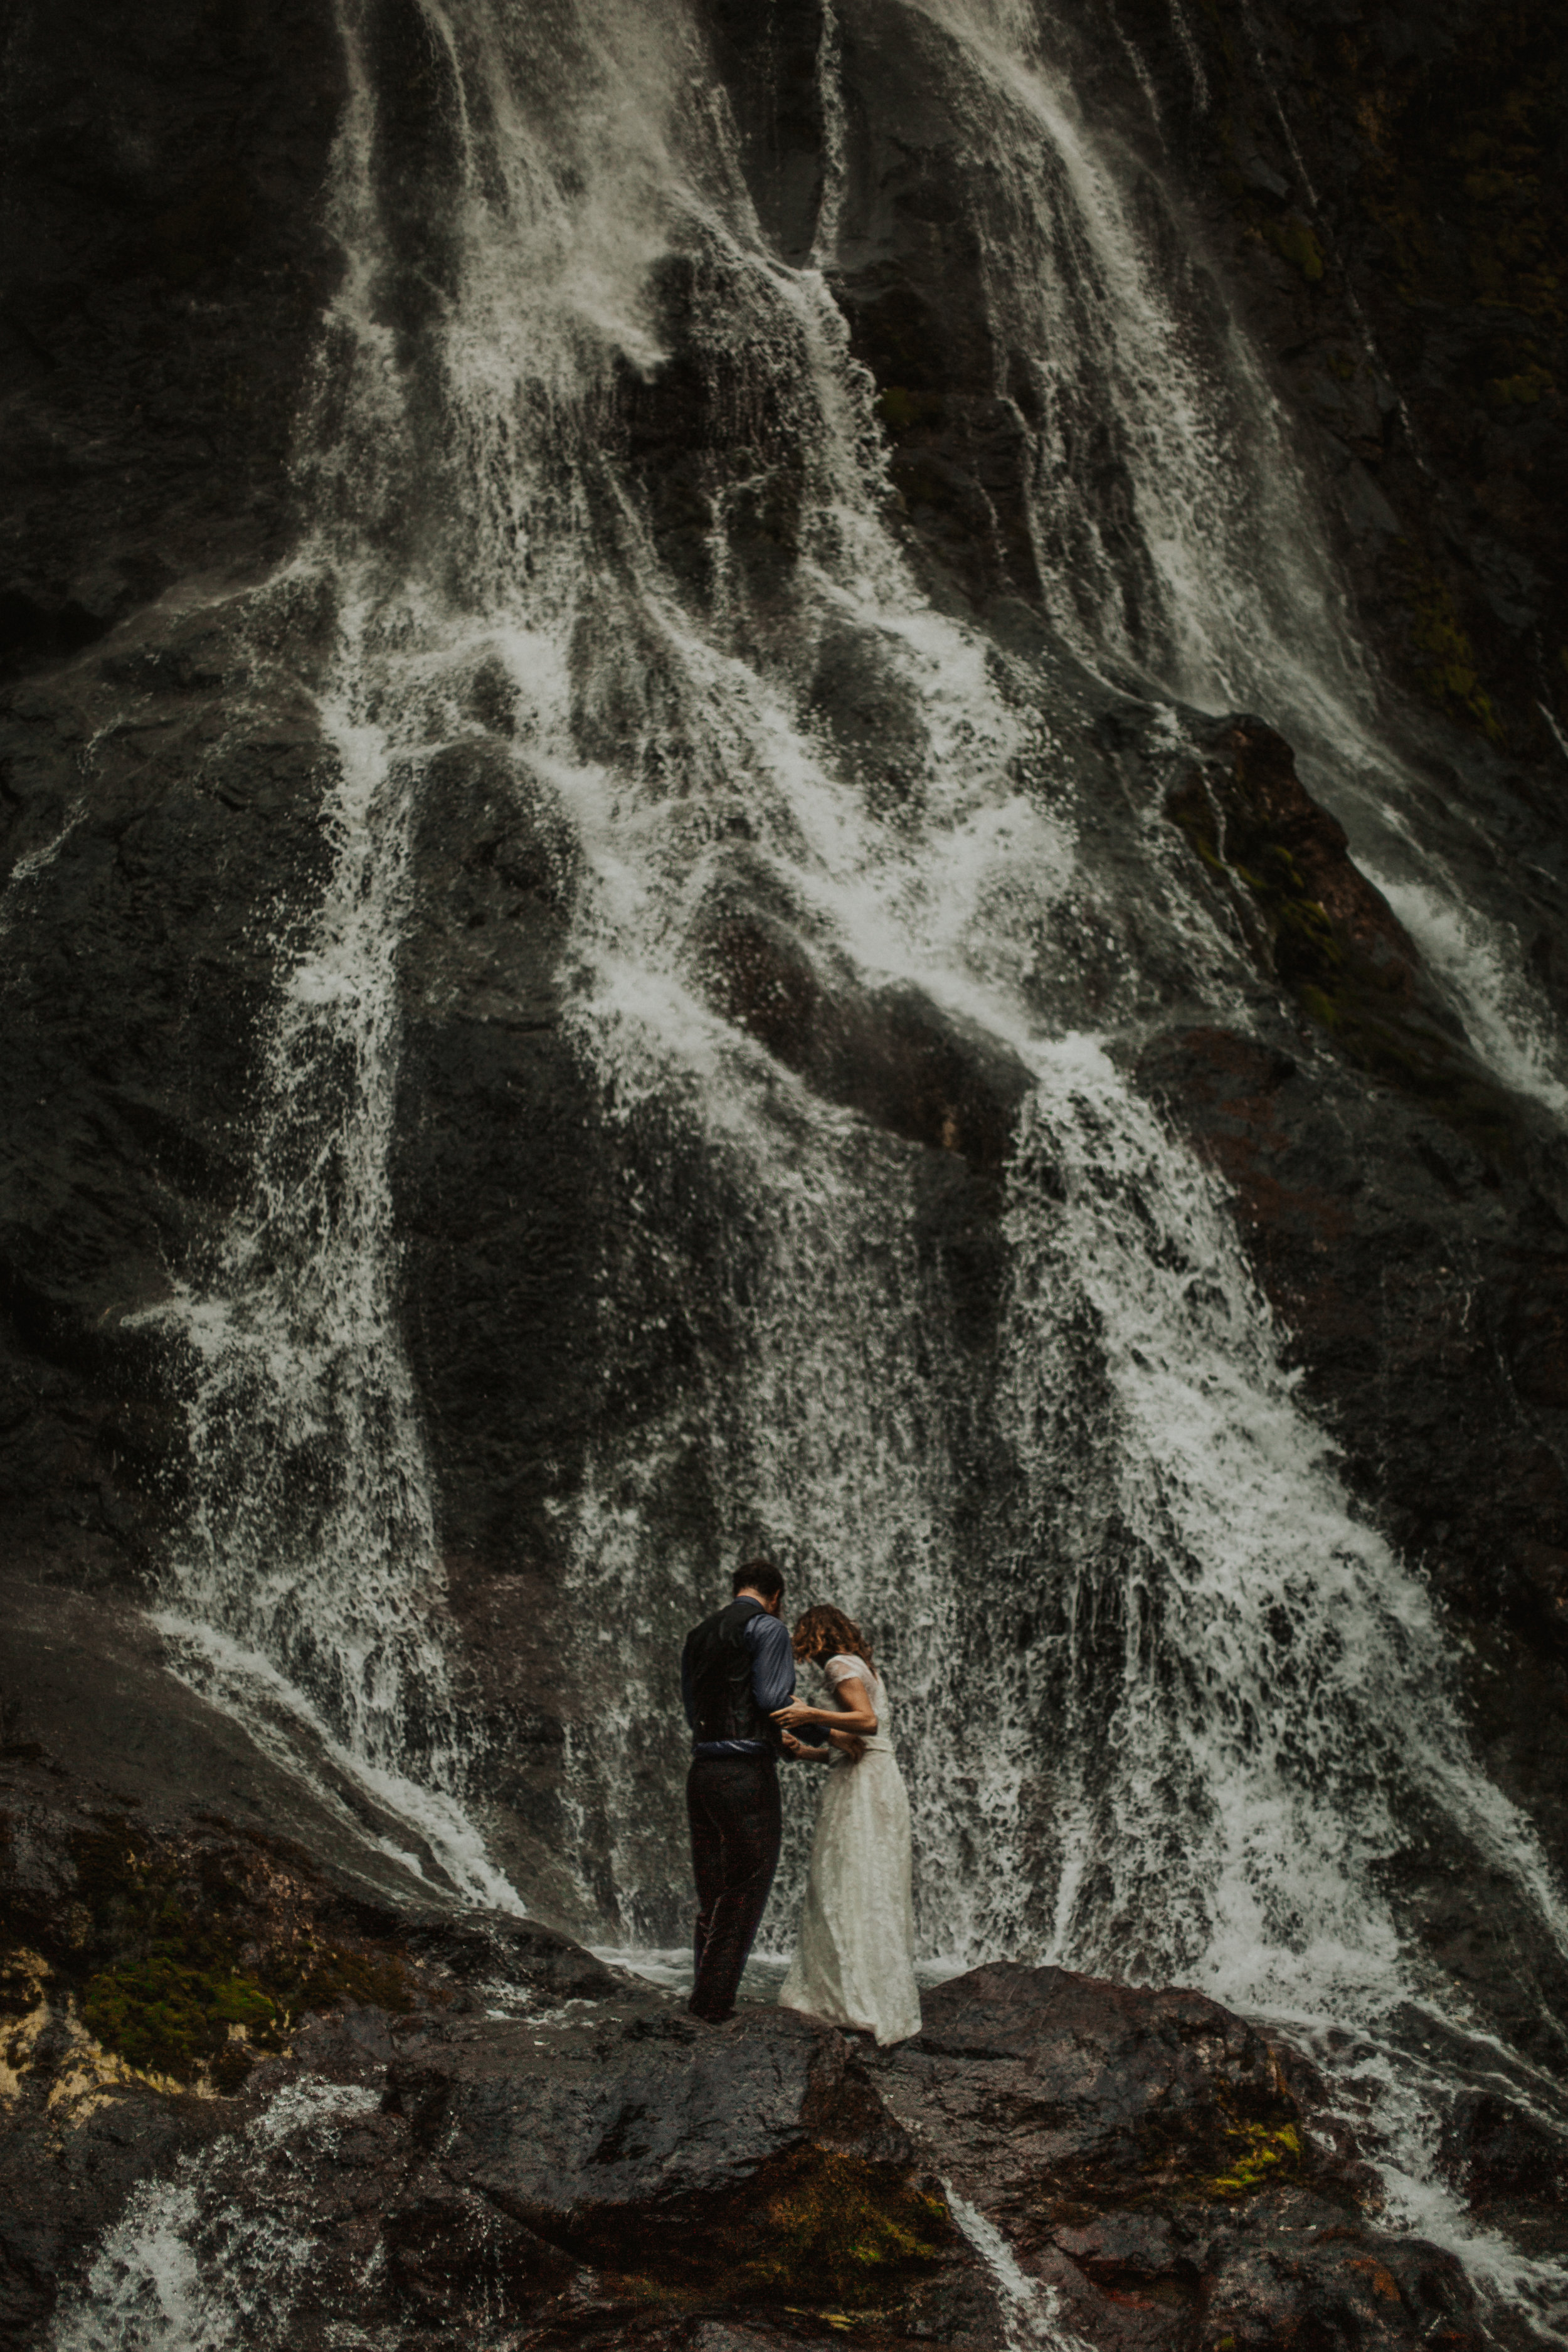 Bride and Groom Waterfall Portraits in Washington State | Rosemary & Pine Photography